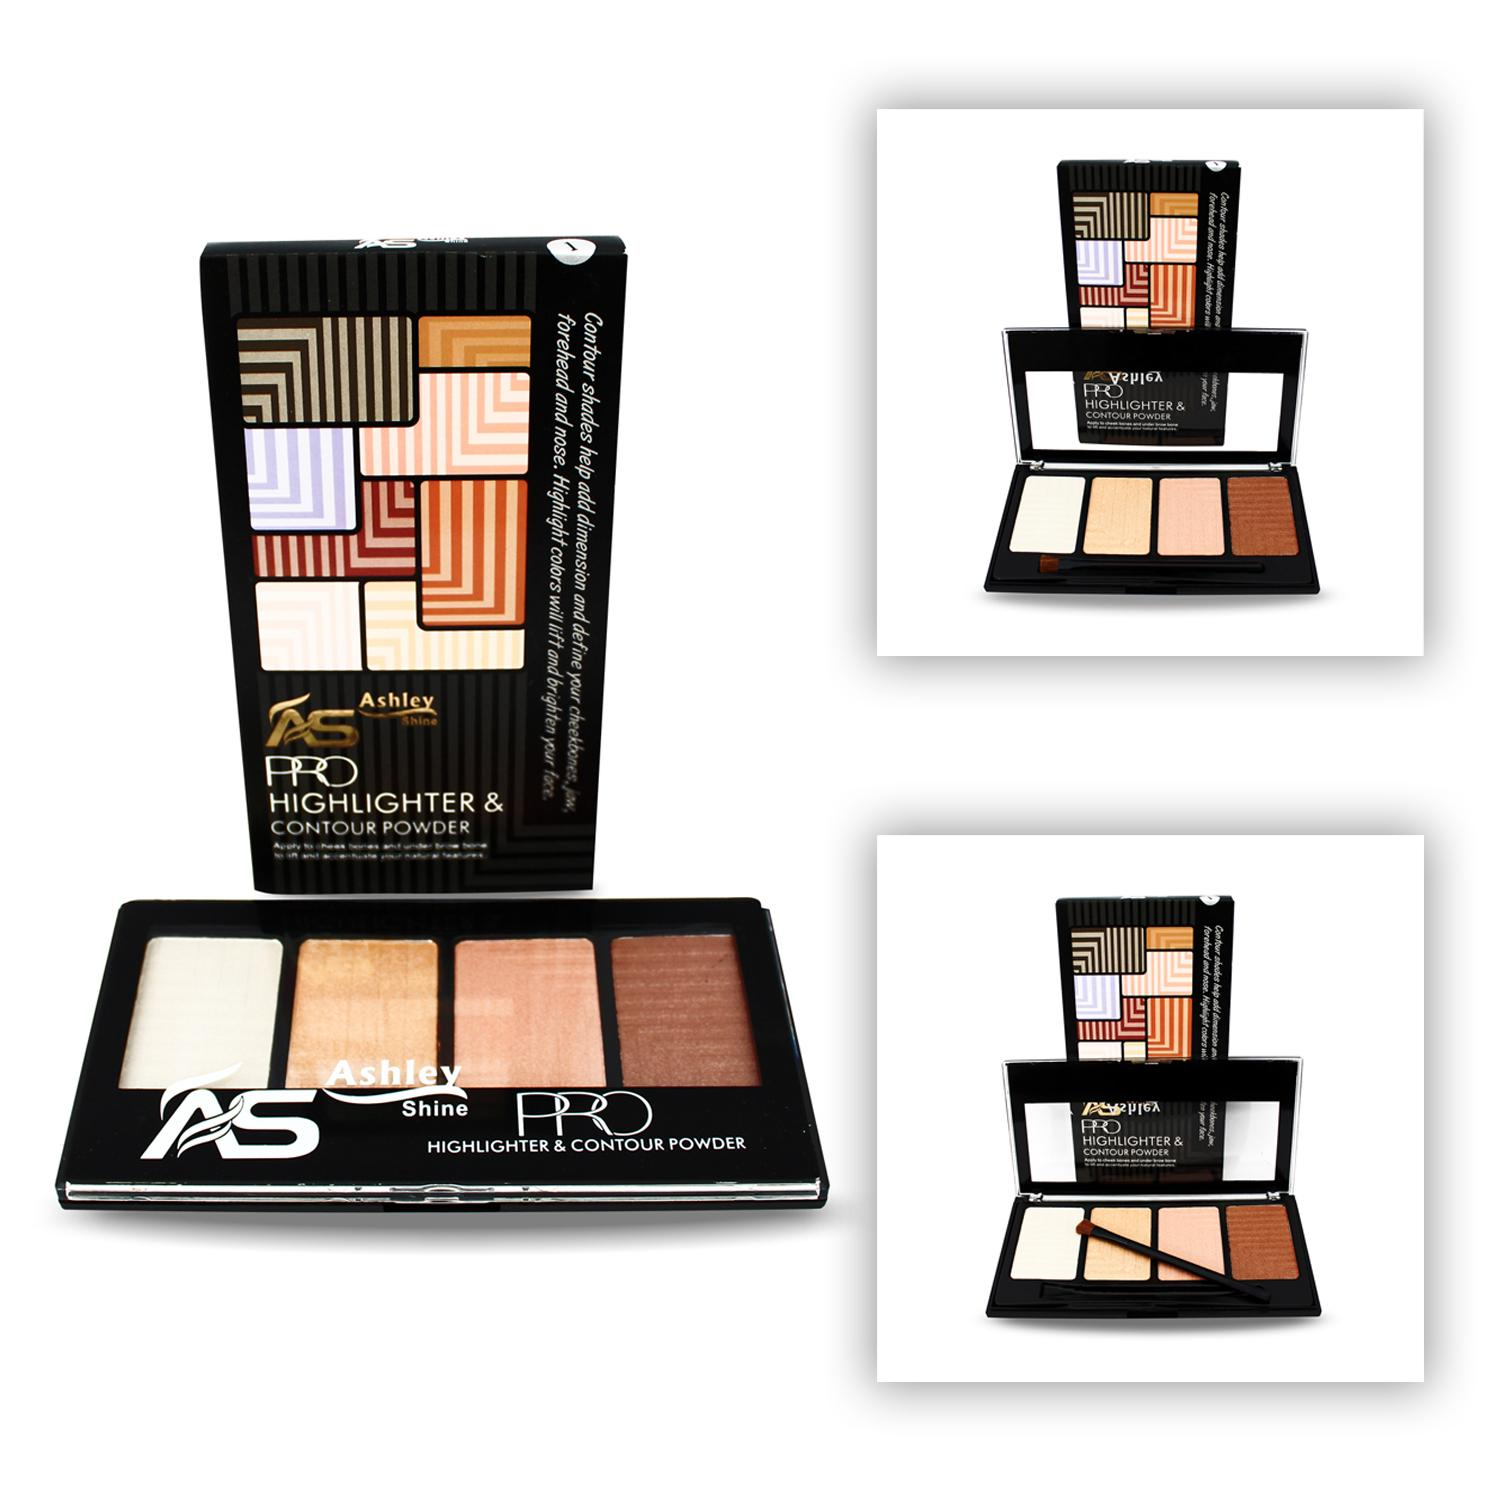 AS Pro Highlighter and Contour Powder 4 Palette-Parkson Philippines